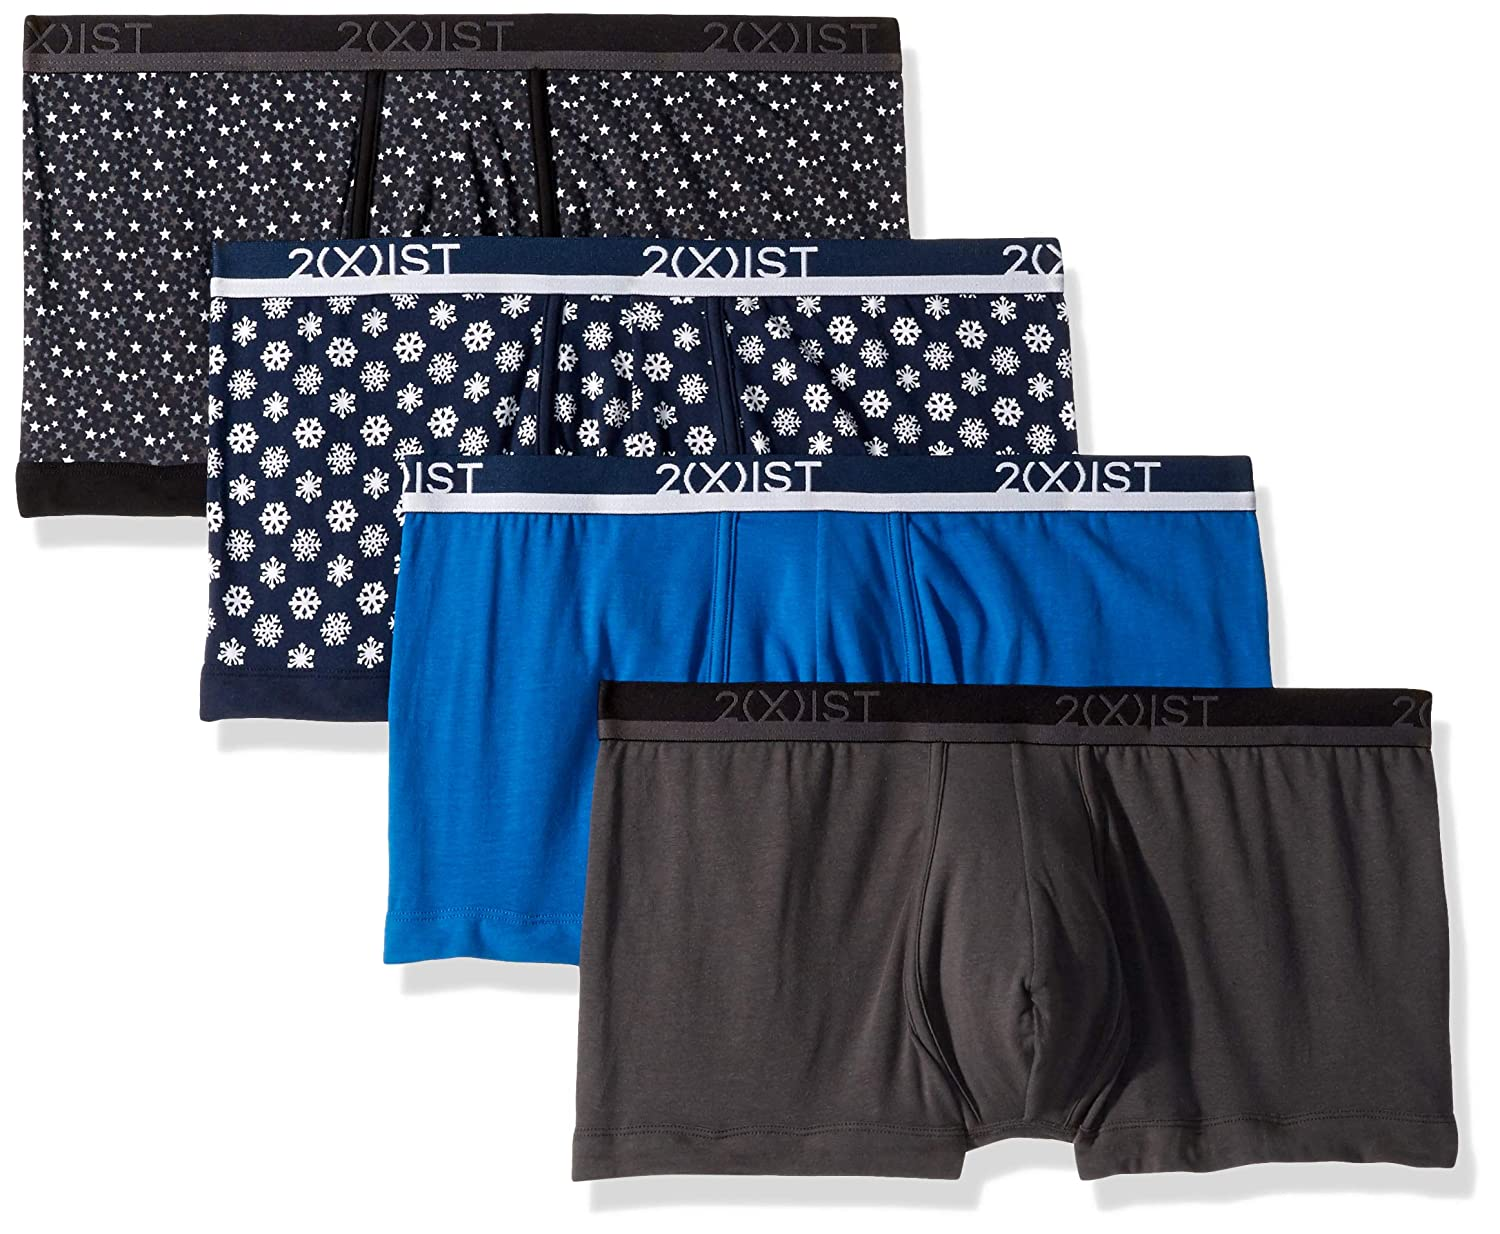 X 2 IST Mens Cotton No-Show Trunk 021333